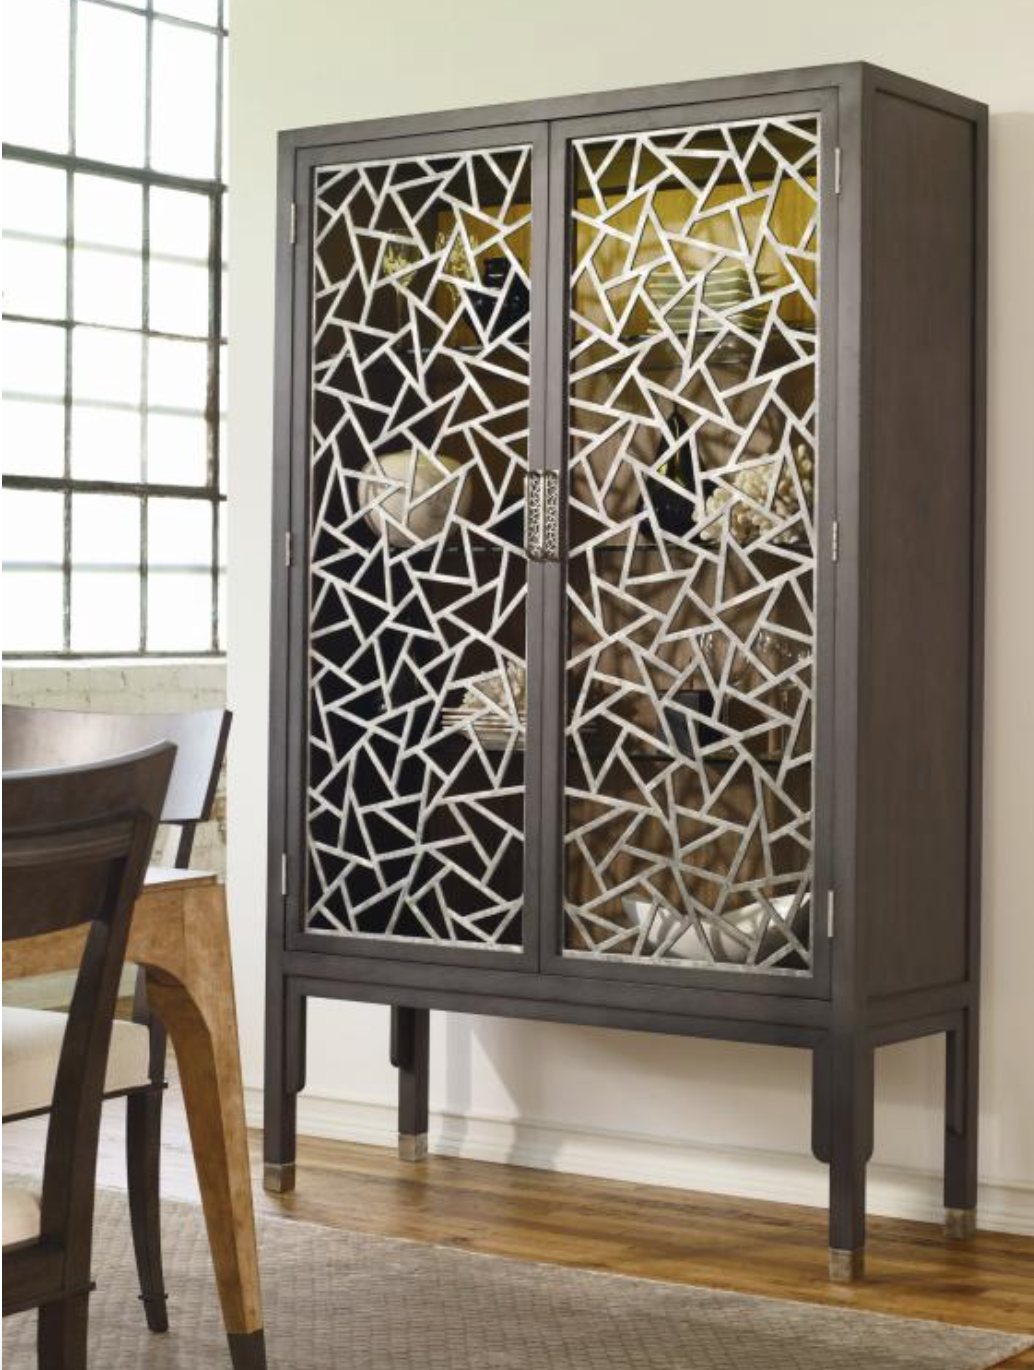 Any space would be graced with the unique, beautiful grilles panel design. This display cabinet bring a twist to any sophisticated dining area.